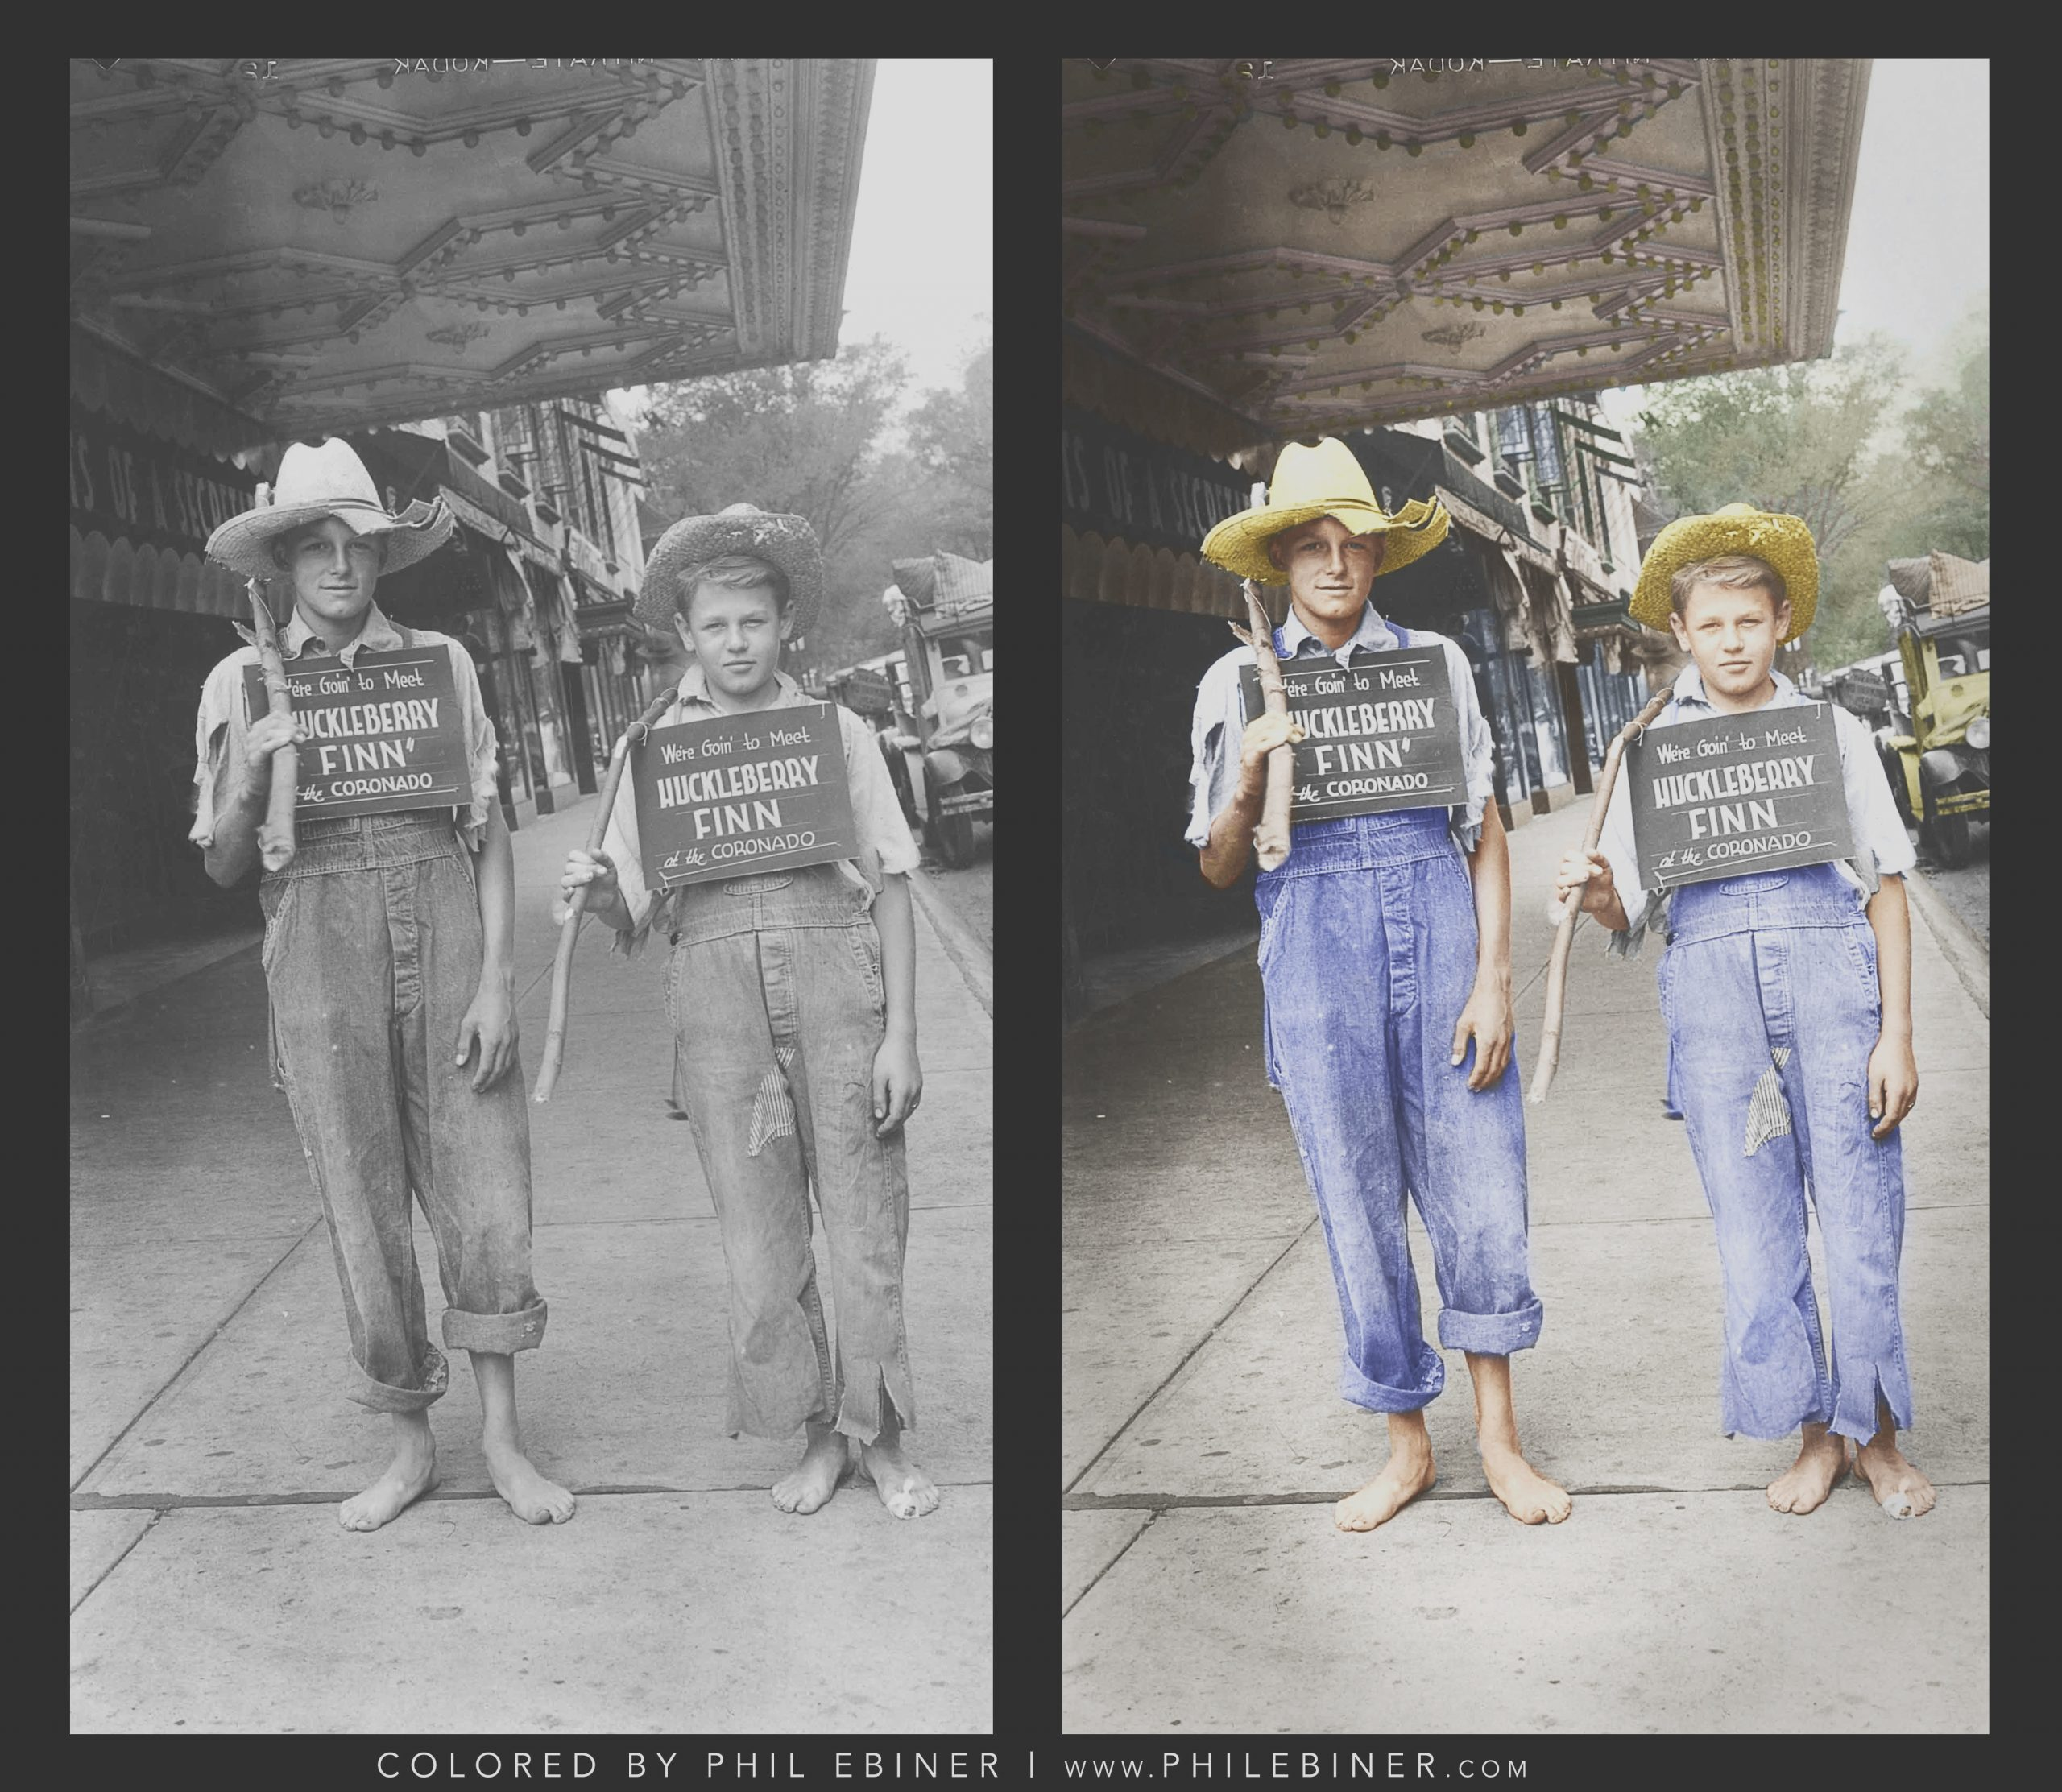 photo colorization adding color to black and white photographs